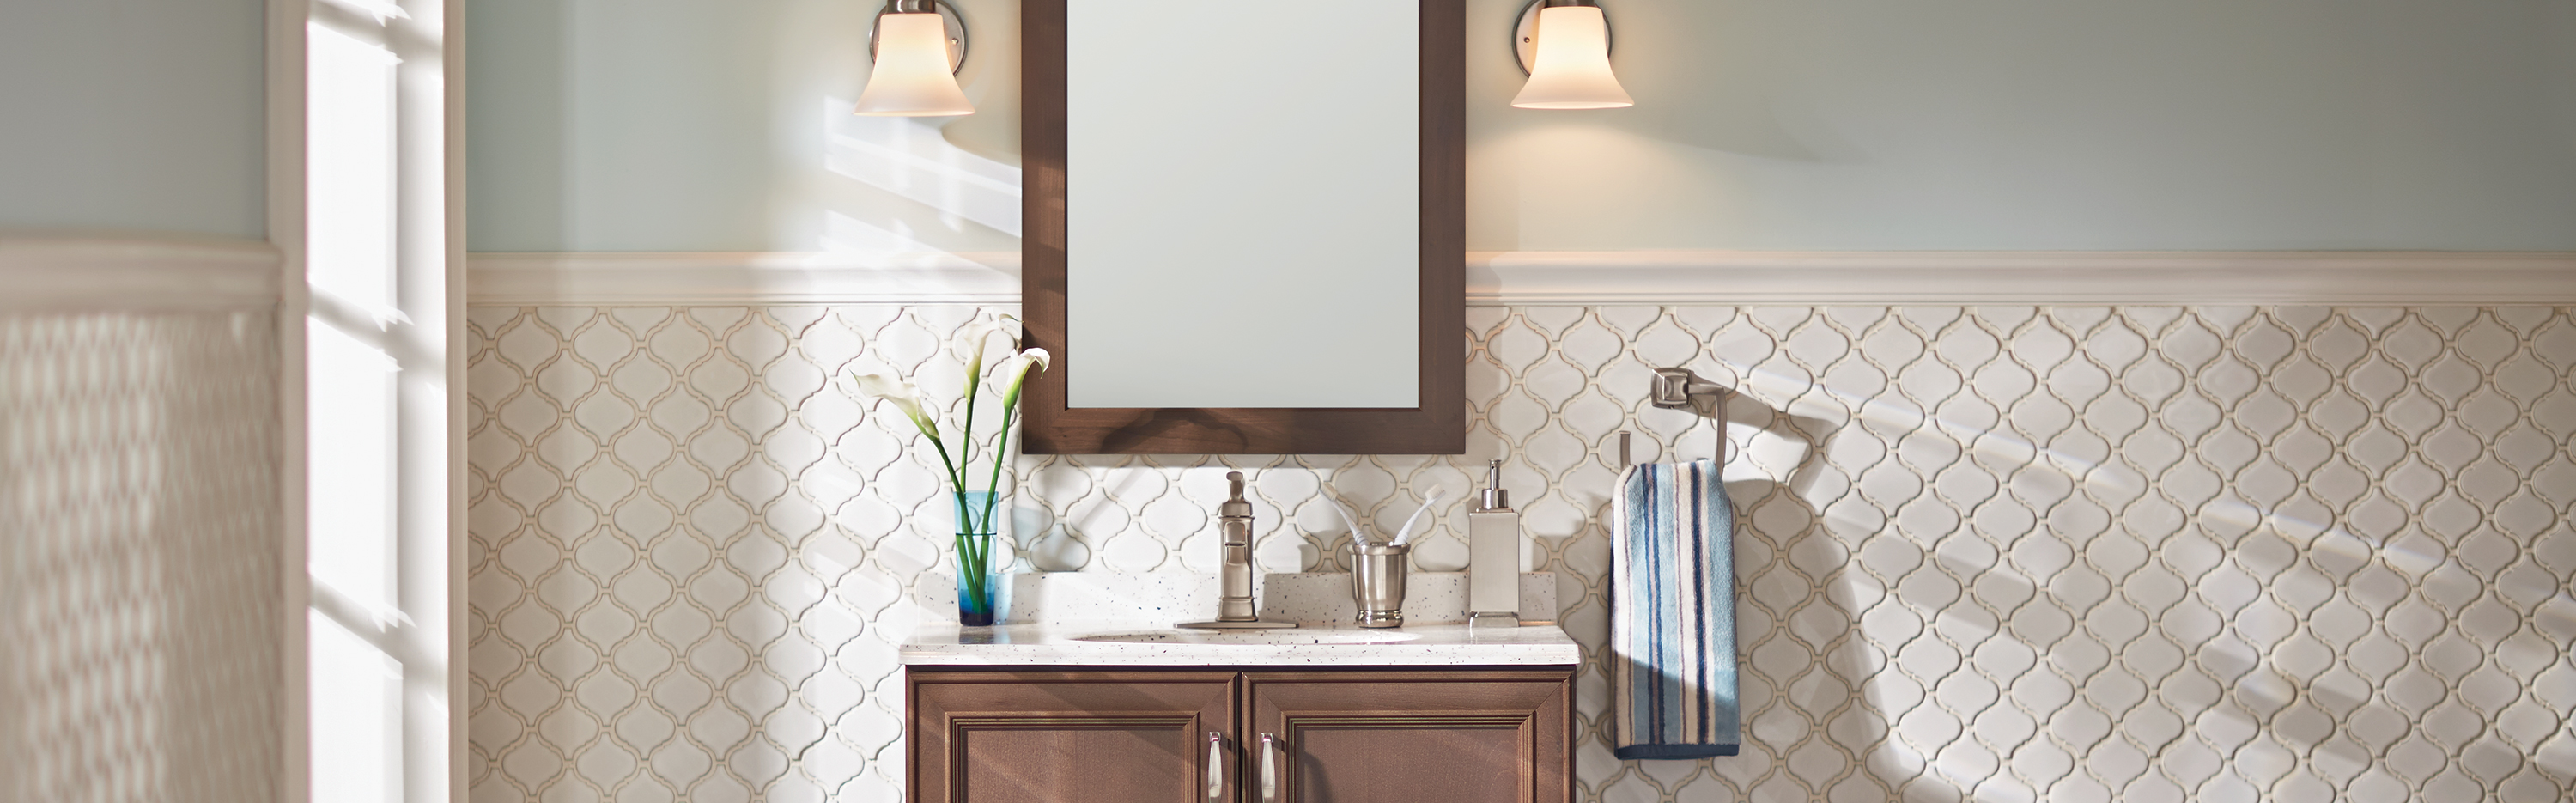 The Home Depot | 4 WAYS TO UPDATE YOUR BATHROOM ON A BUDGET